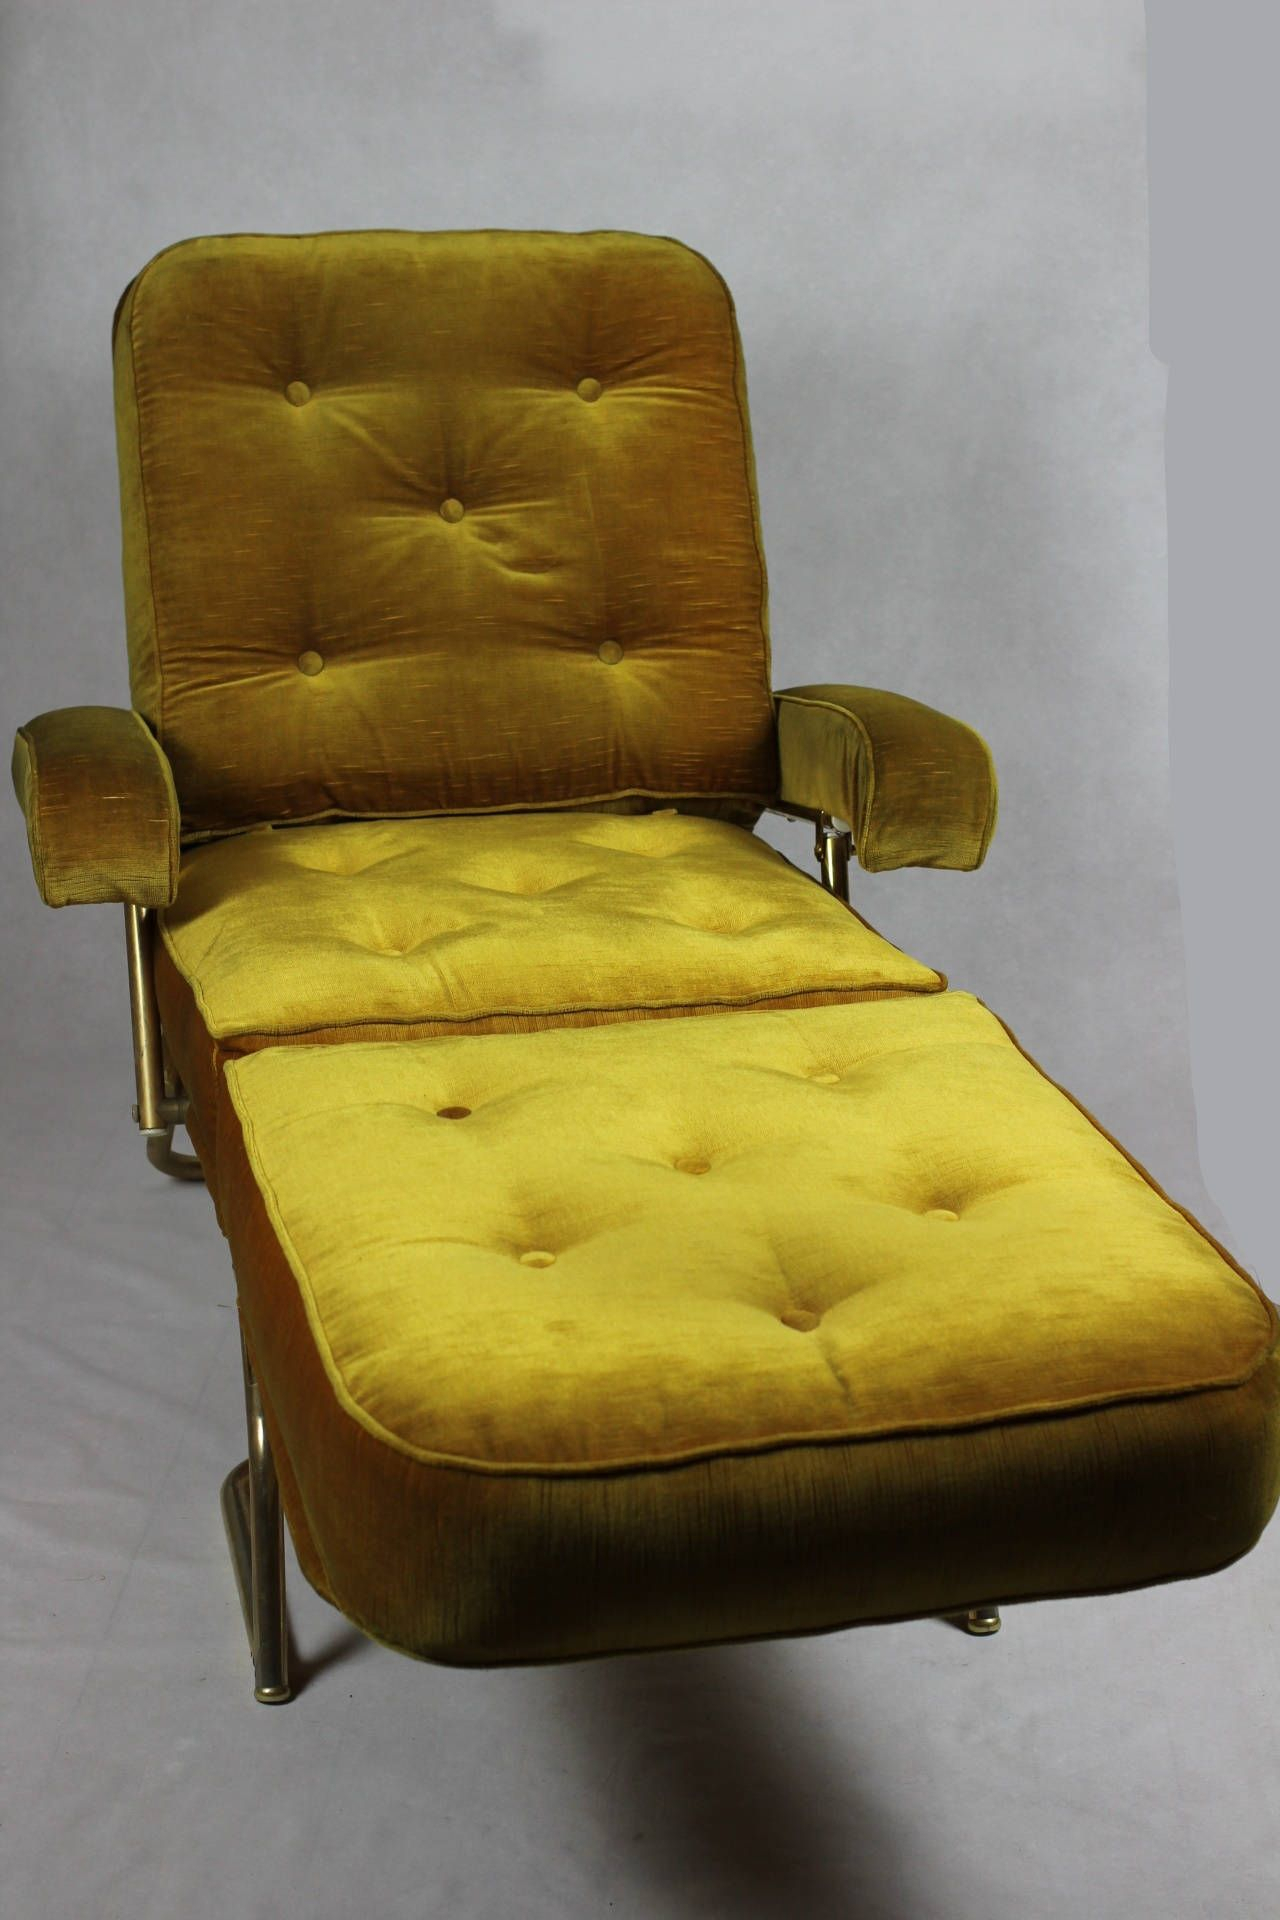 French Designer Chaise Longue // 1970'S Avacado Green Throughout French Seamed Sectional Sofas Oblong Mustard (View 15 of 15)